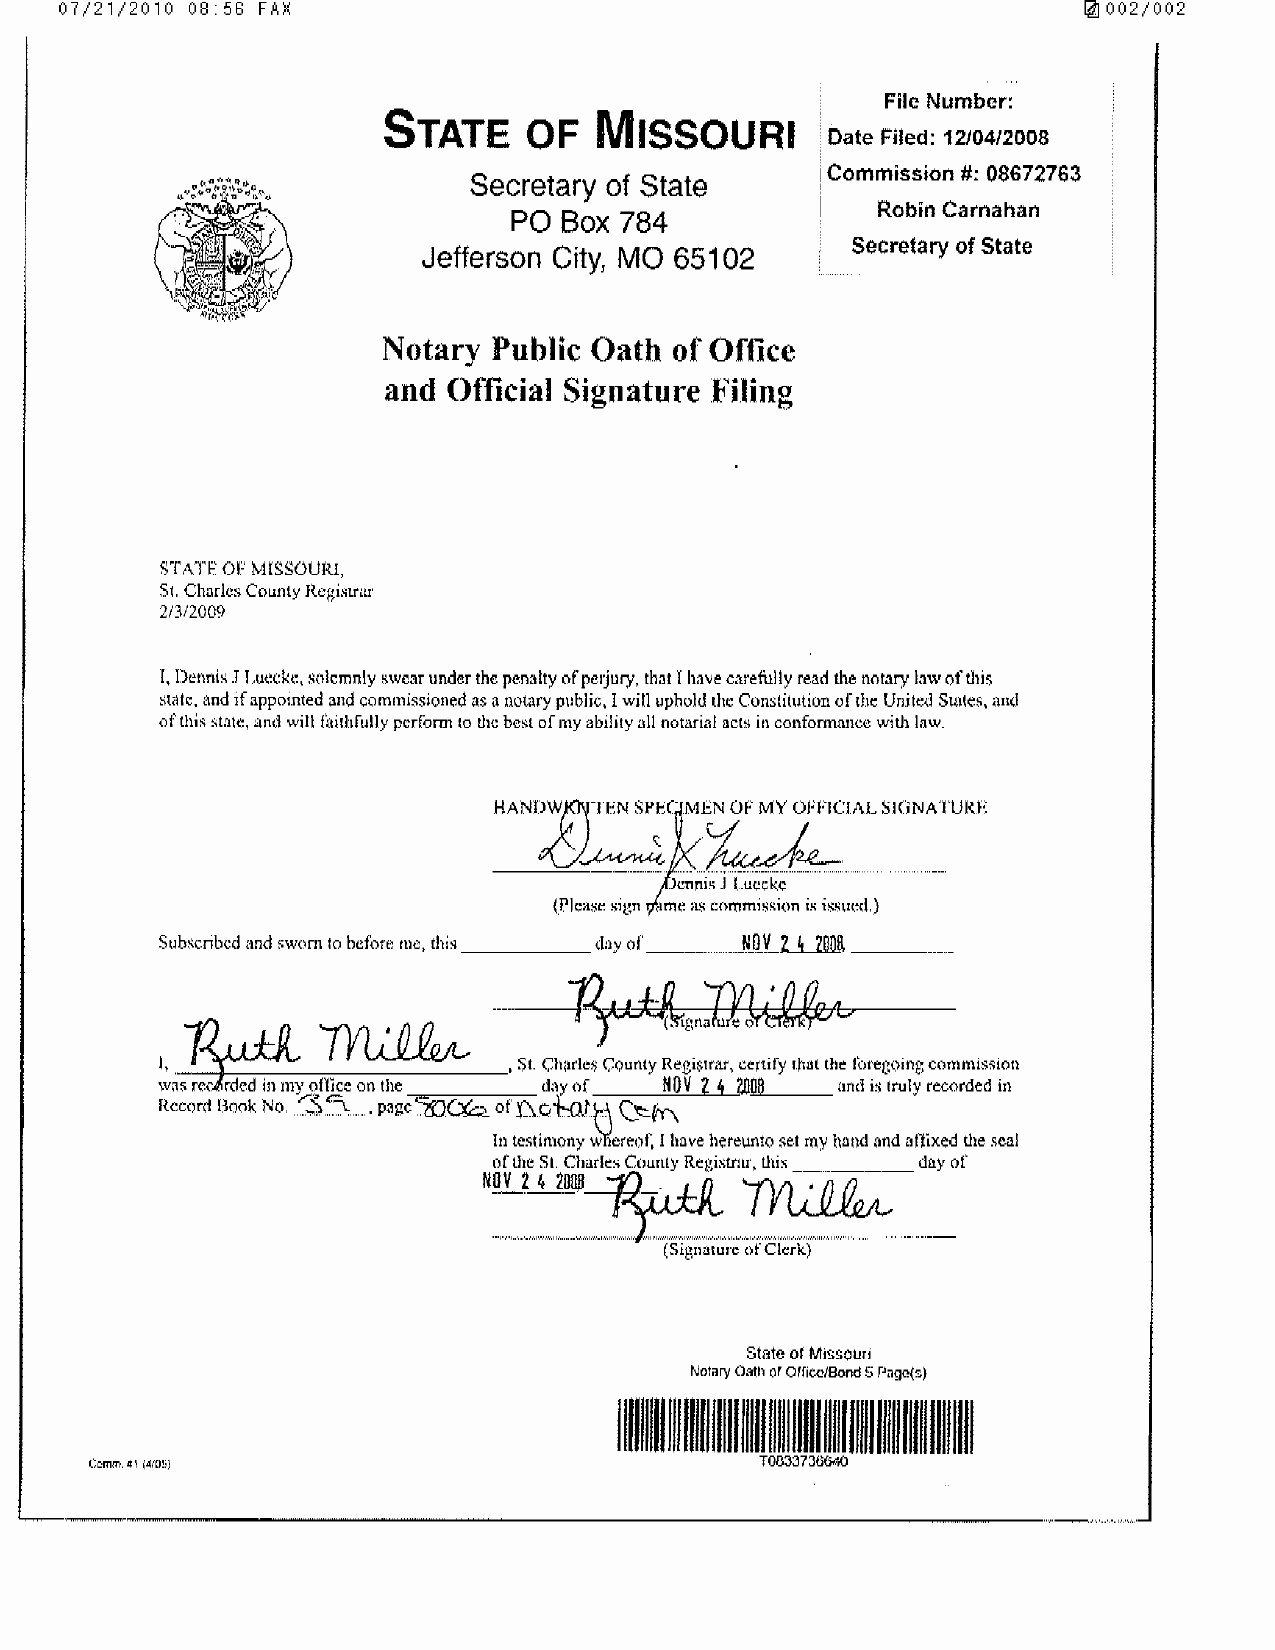 Notary Public Signature Line Template New Operation Restoration Anne Batte